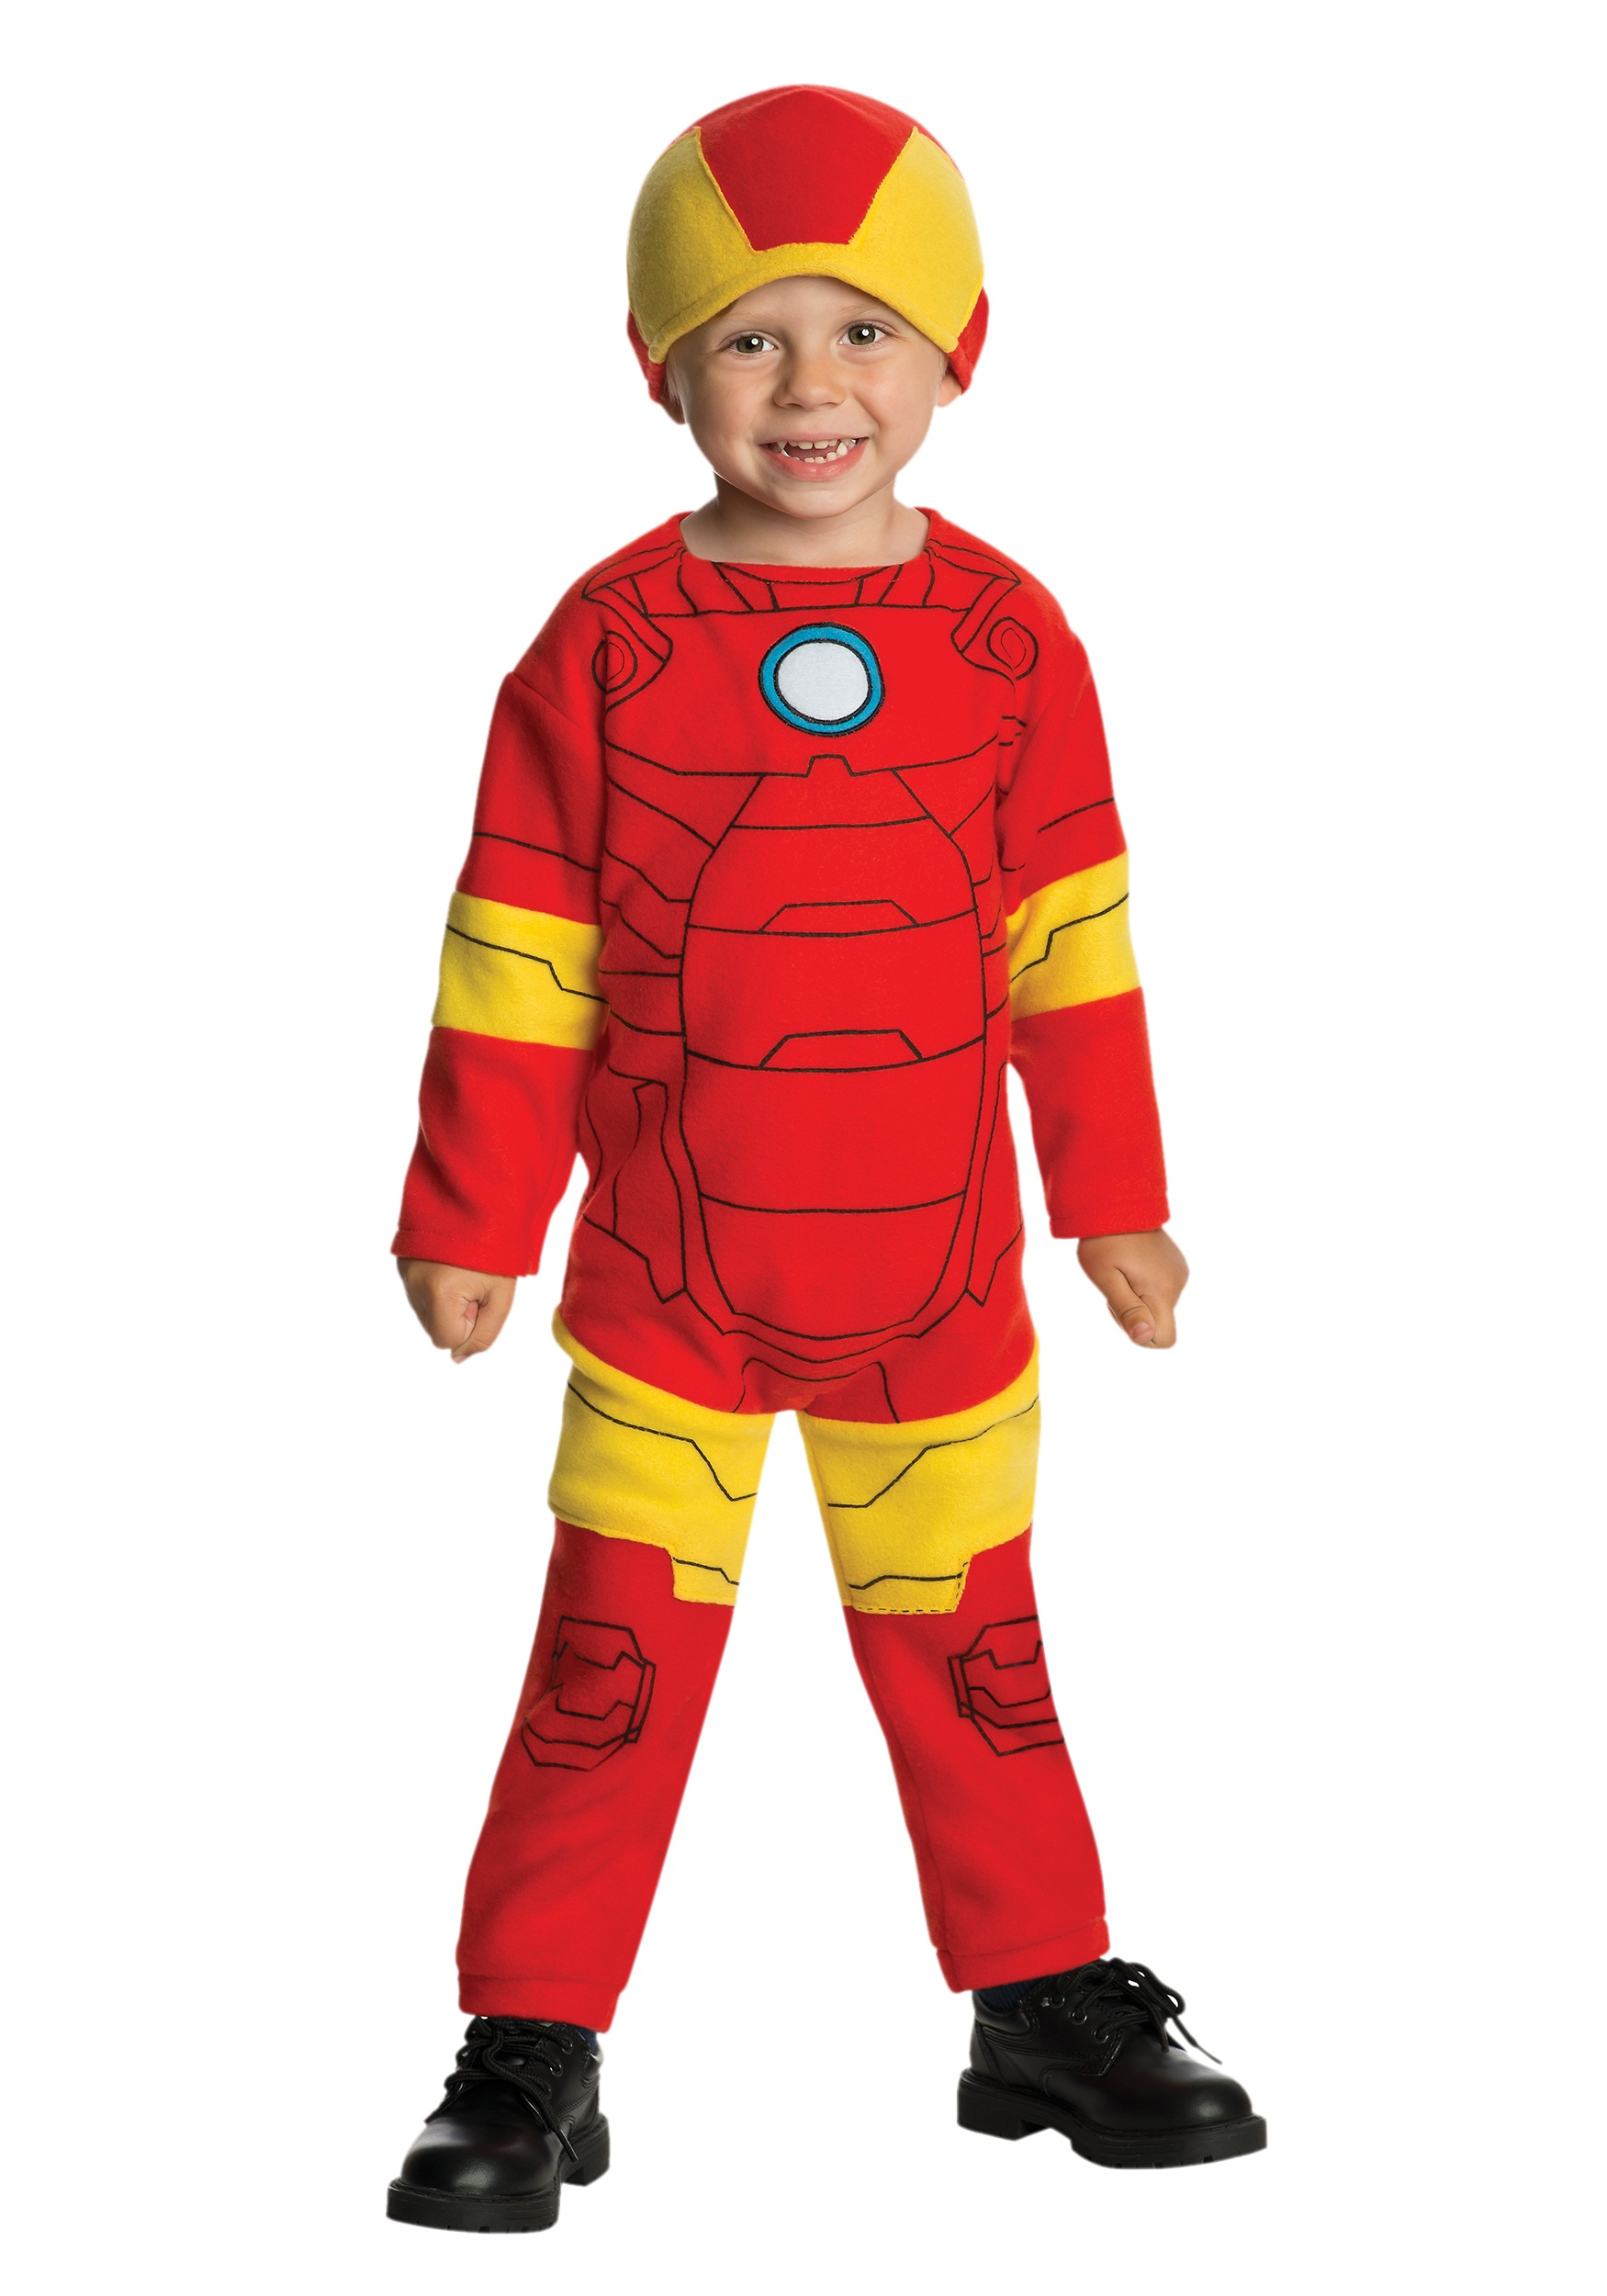 Toddler Iron Man Fleece Jumpsuit  sc 1 st  Halloween Costumes & Toddler Iron Man Fleece Jumpsuit - Halloween Costumes